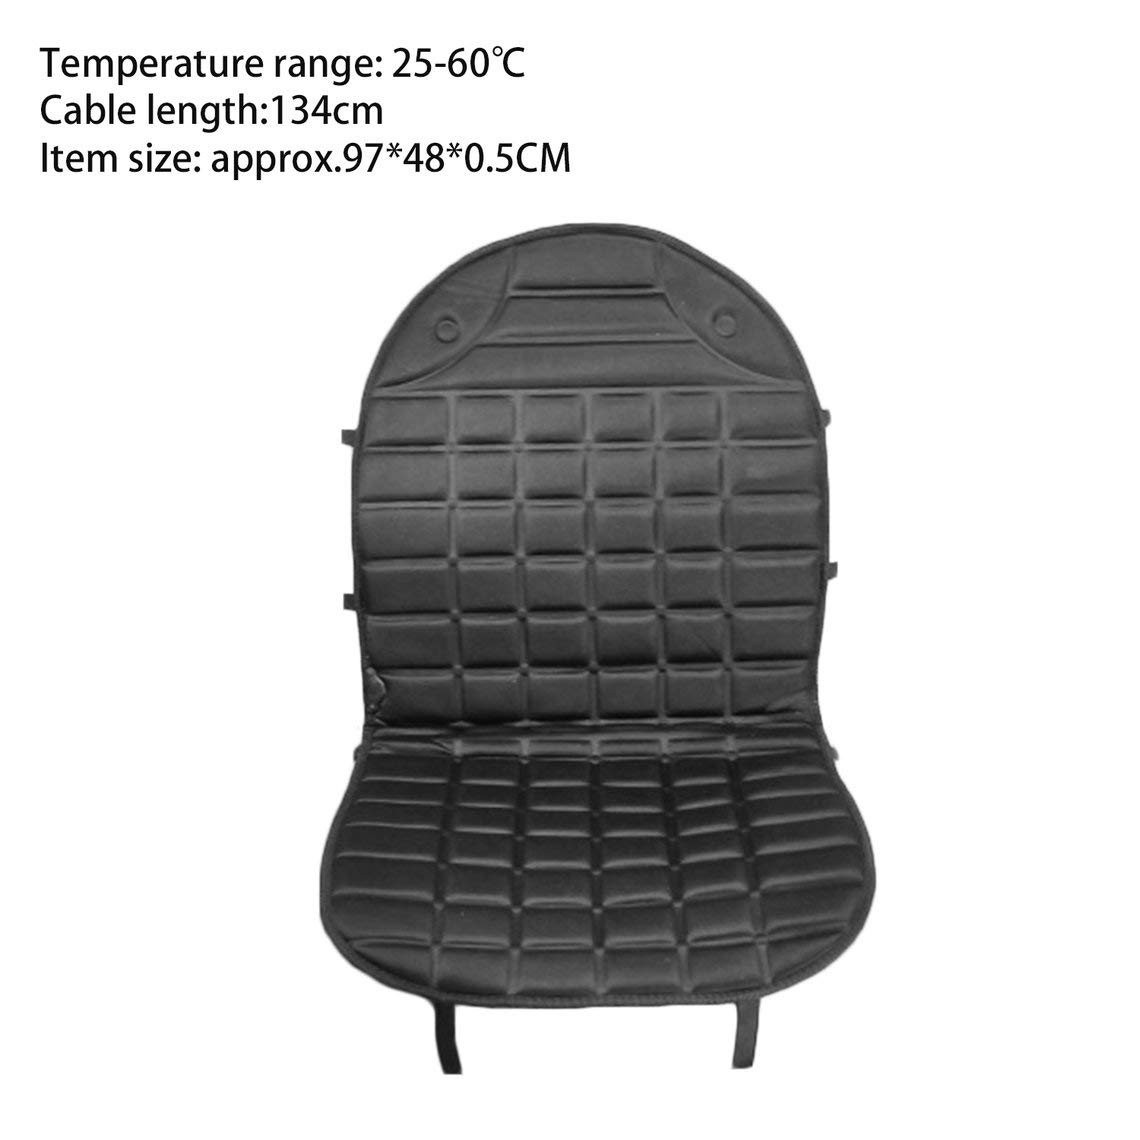 Zinniaya Durable Car Seat Heated Cover 12V Front Seat Heater Auto Winter Warmer Cushion Portable Automobile Accessories